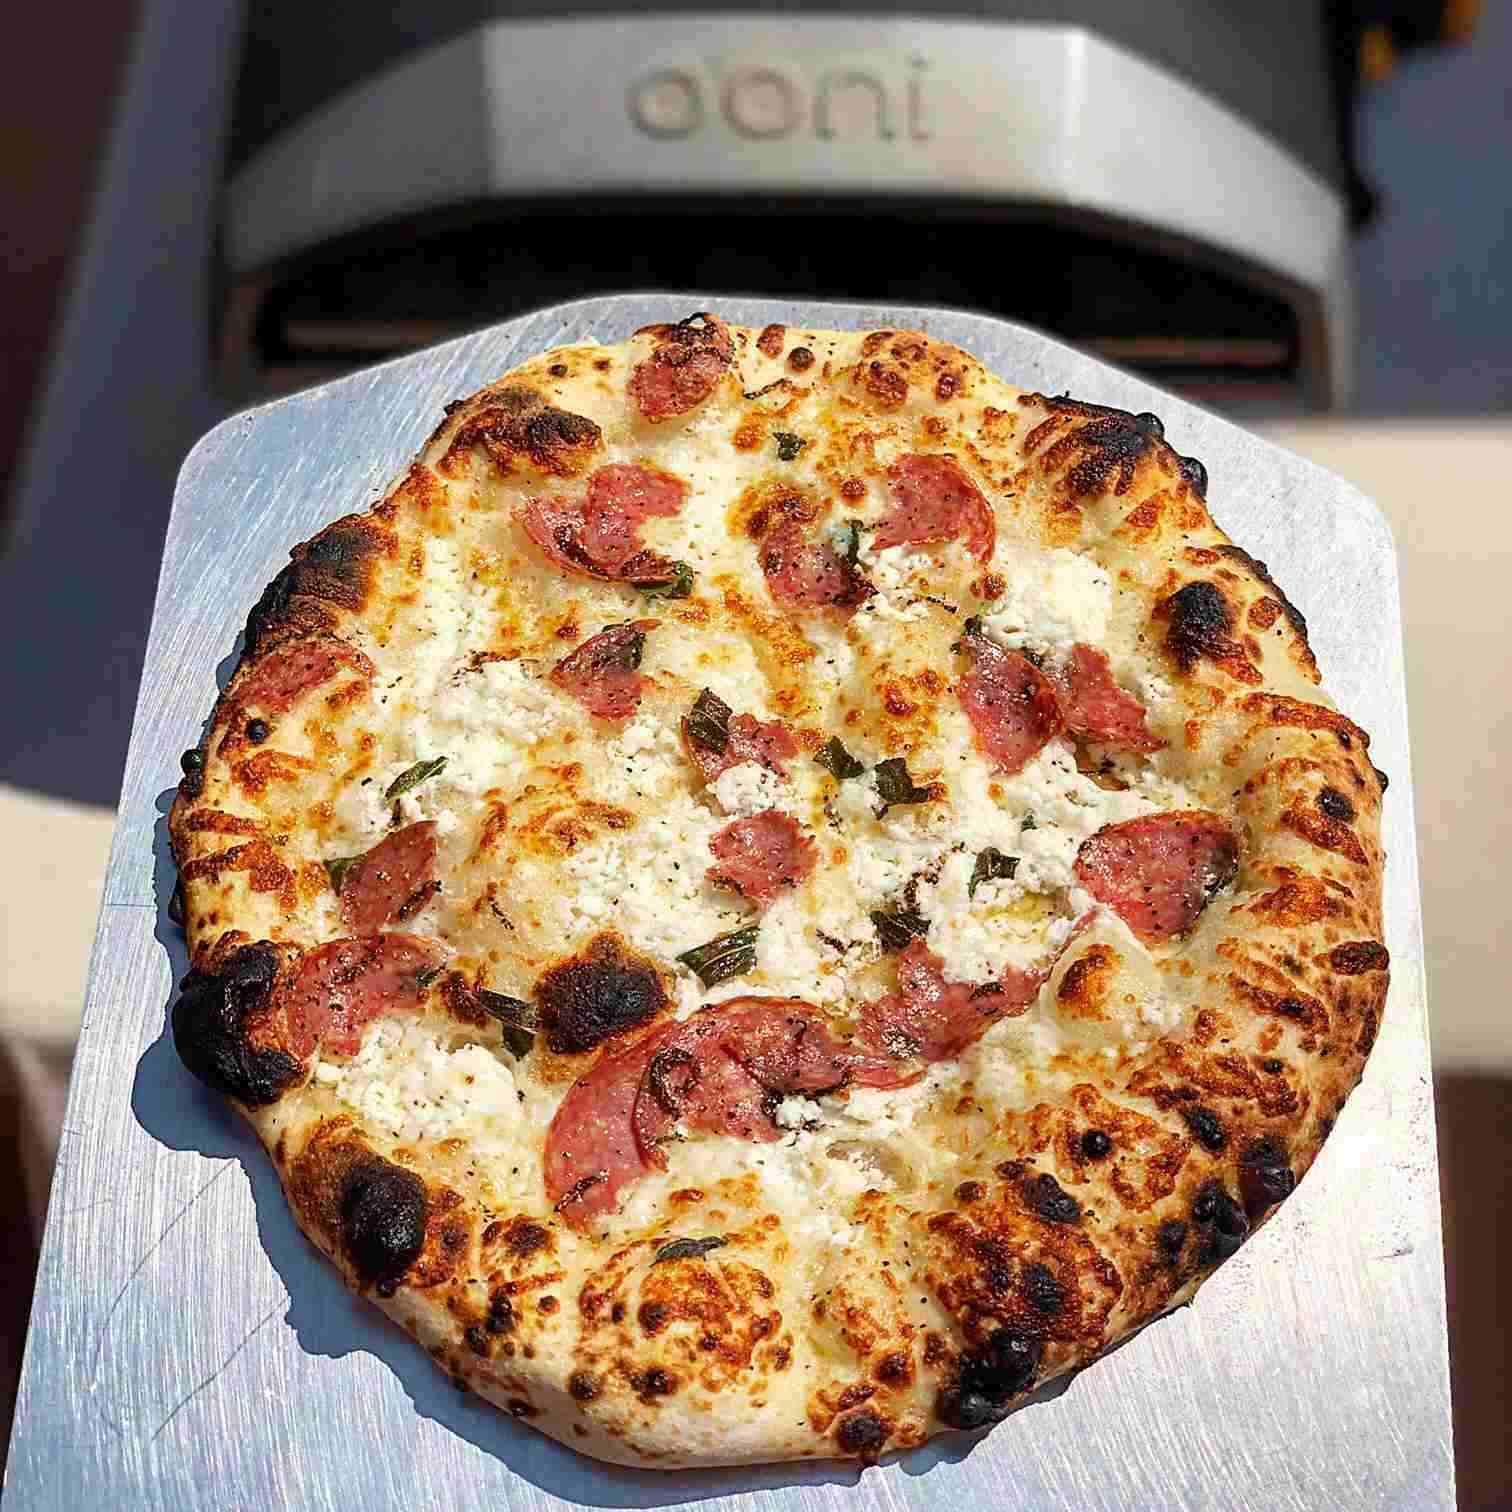 Salami, Goat's Cheese & Hot Honey White Pizza